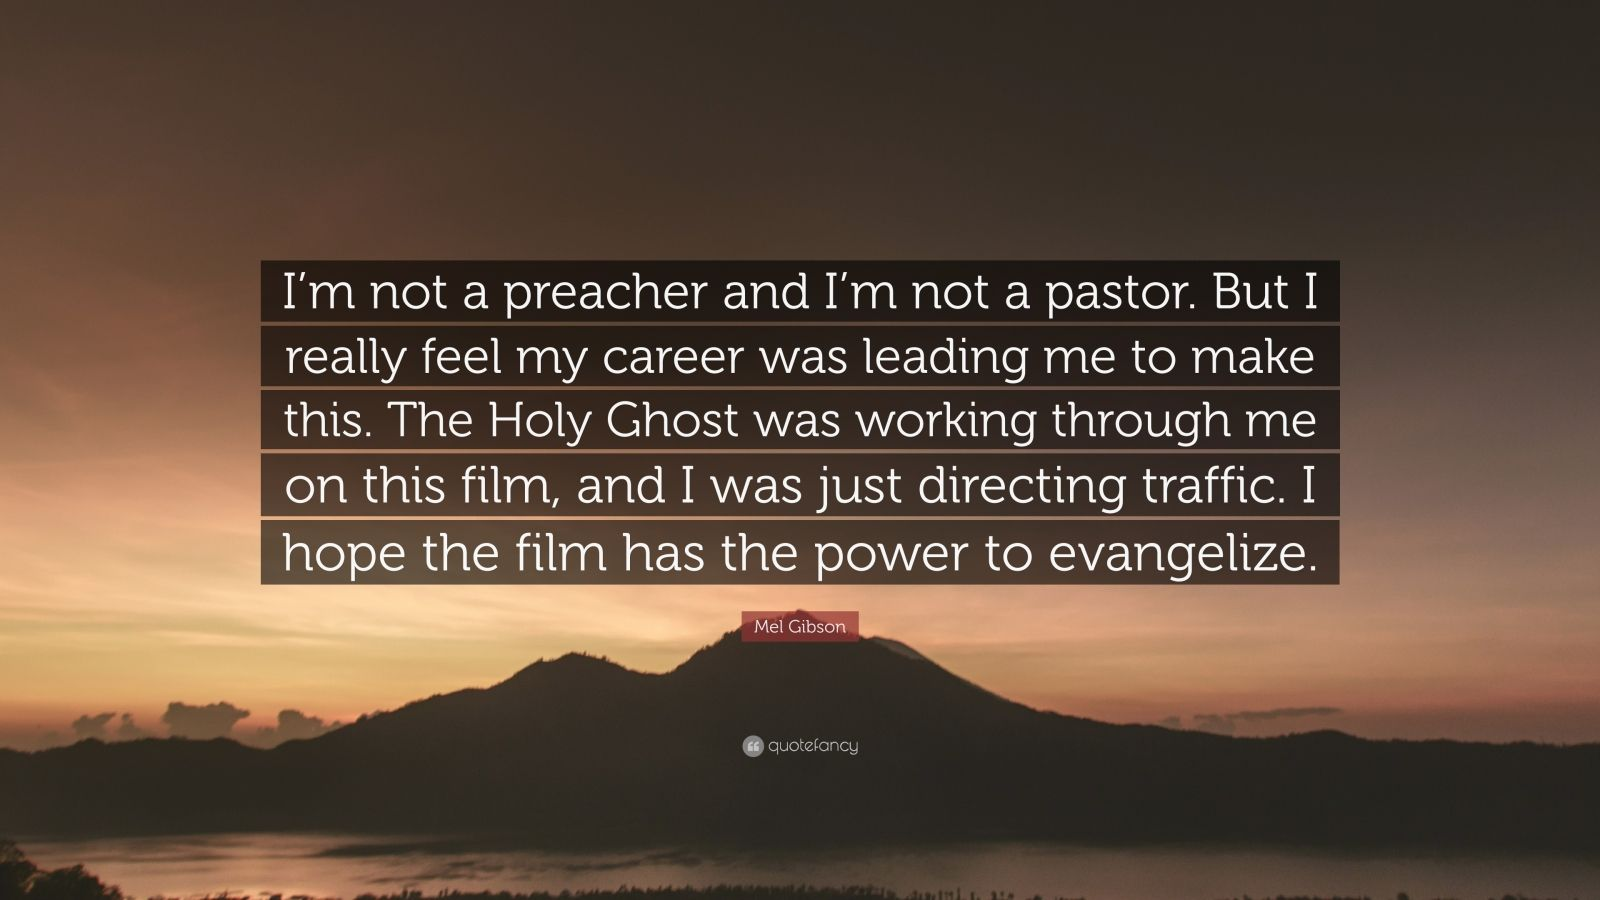 """Mel Gibson Quote: """"I'm not a preacher and I'm not a pastor. But I really feel my career was leading me to make this. The Holy Ghost was working through me on this film, and I was just directing traffic. I hope the film has the power to evangelize."""""""